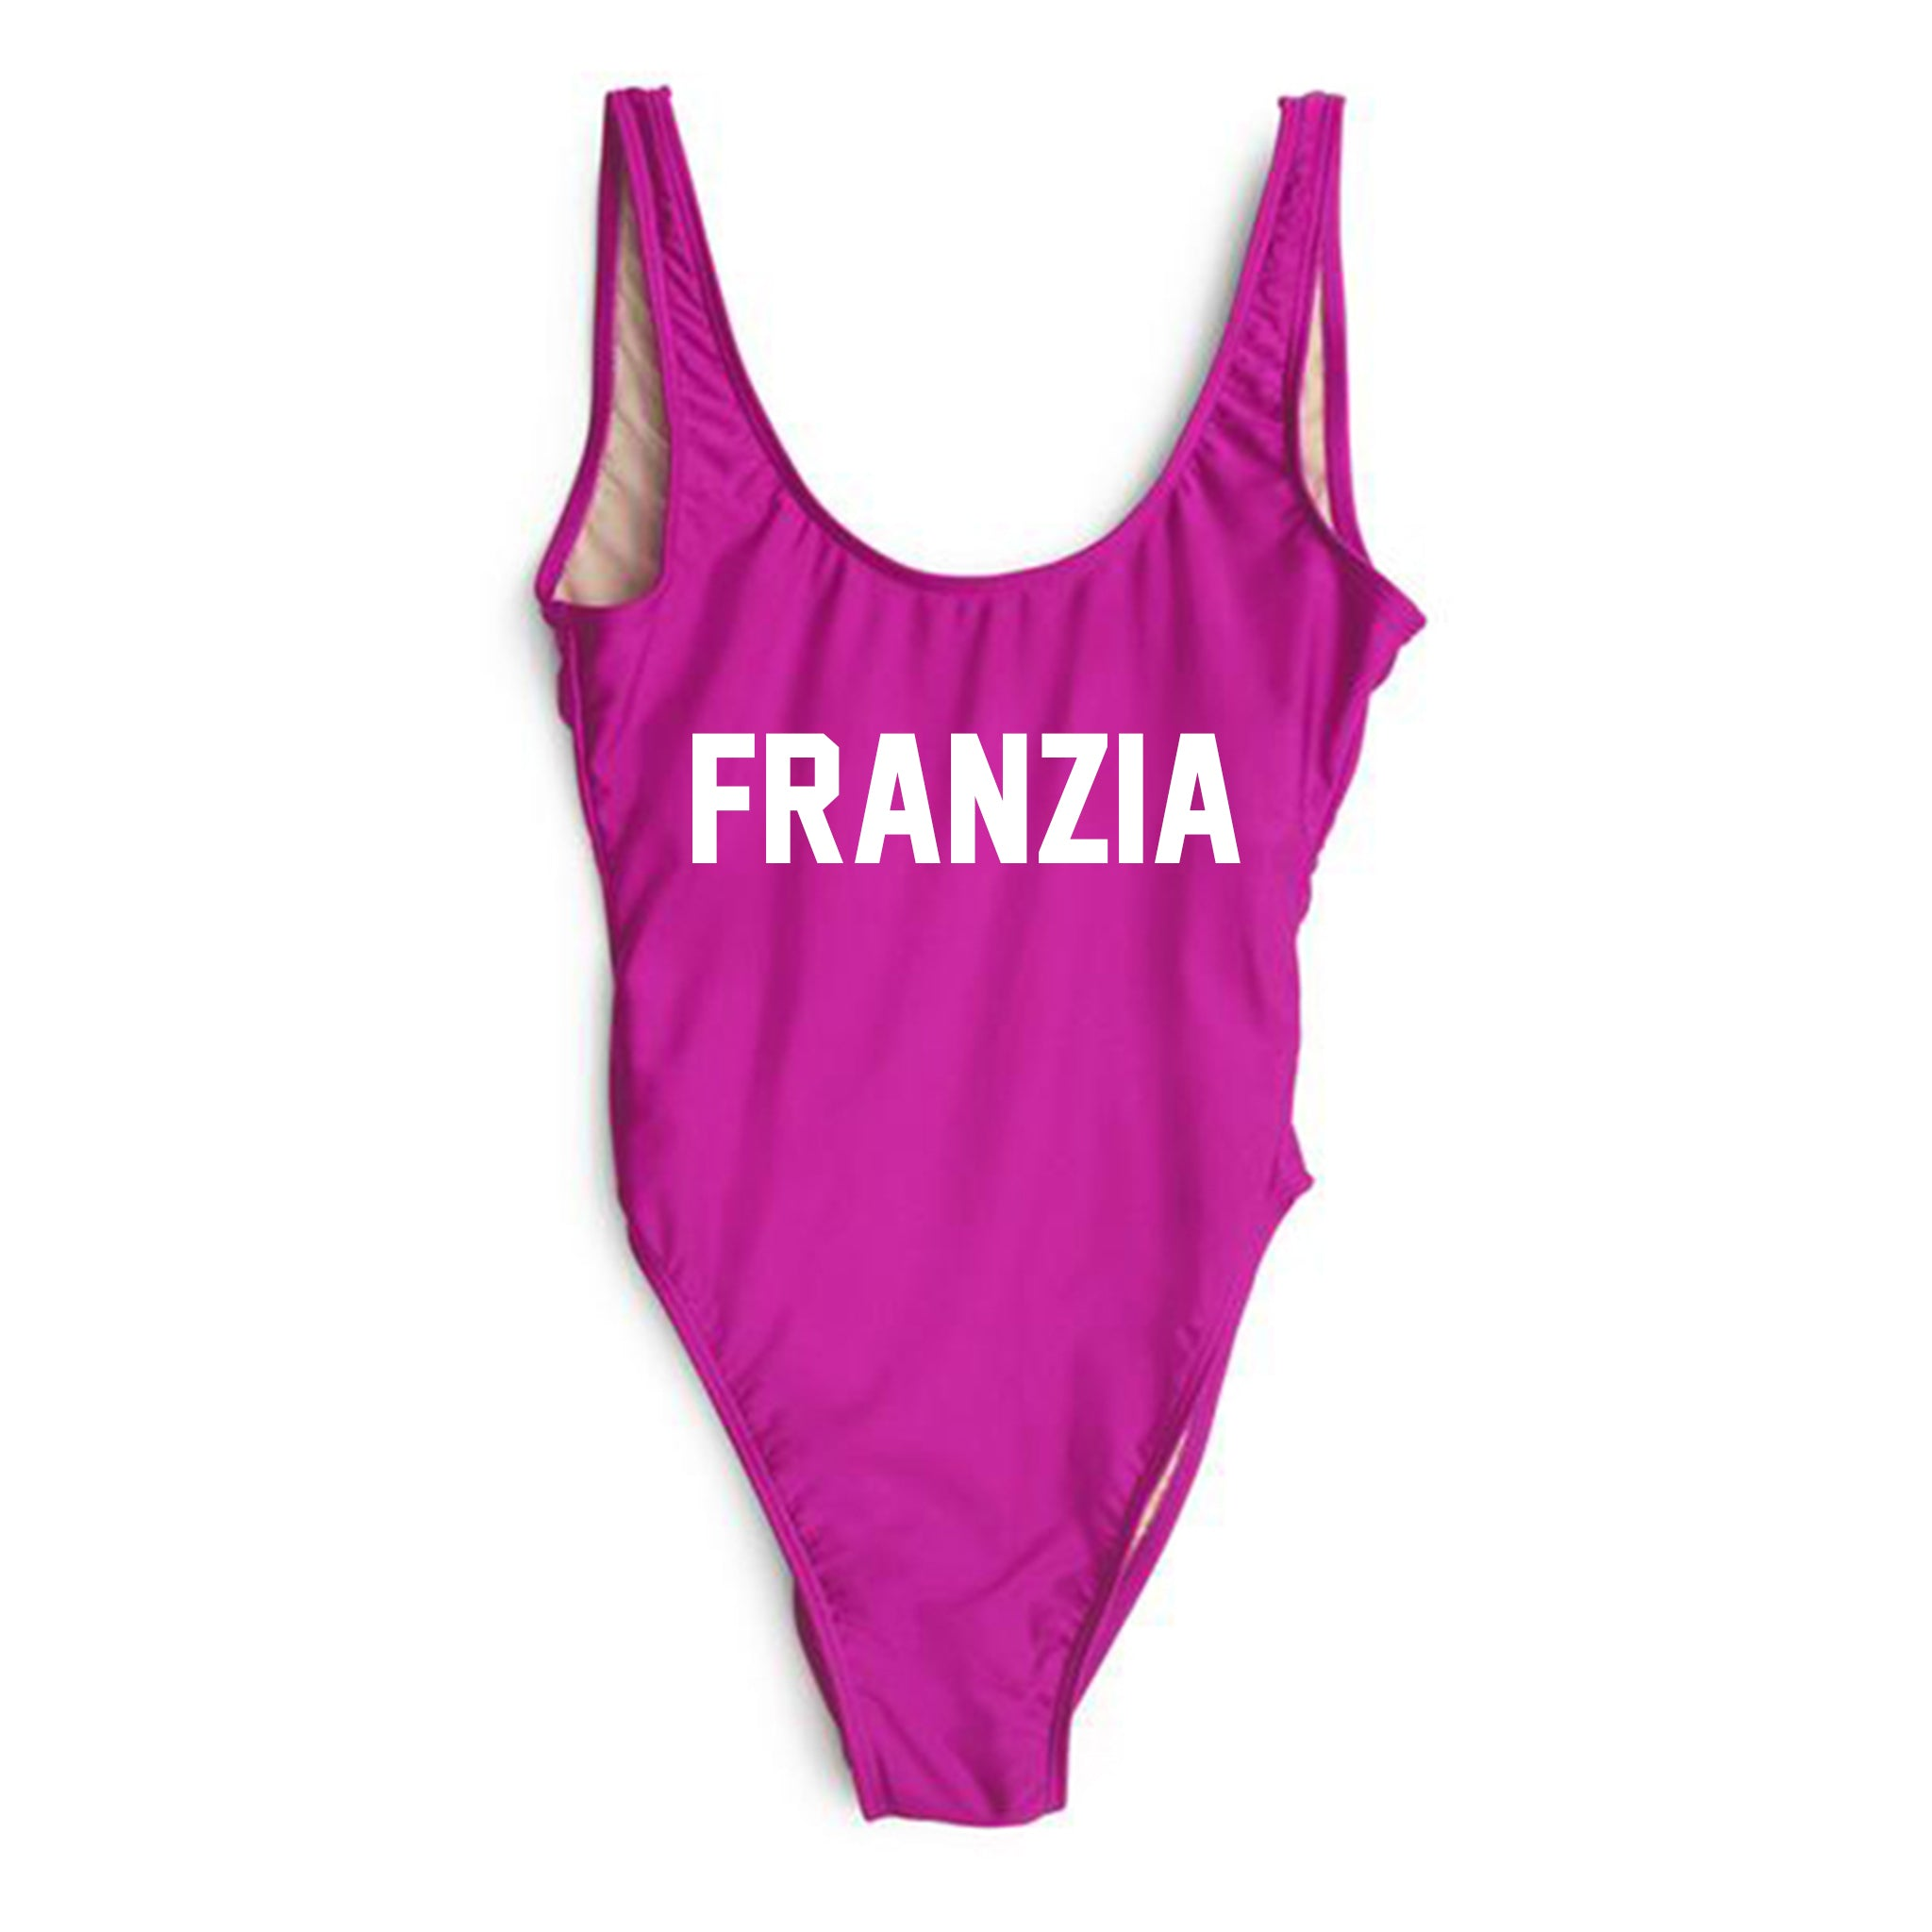 FRANZIA [SWIMSUIT]